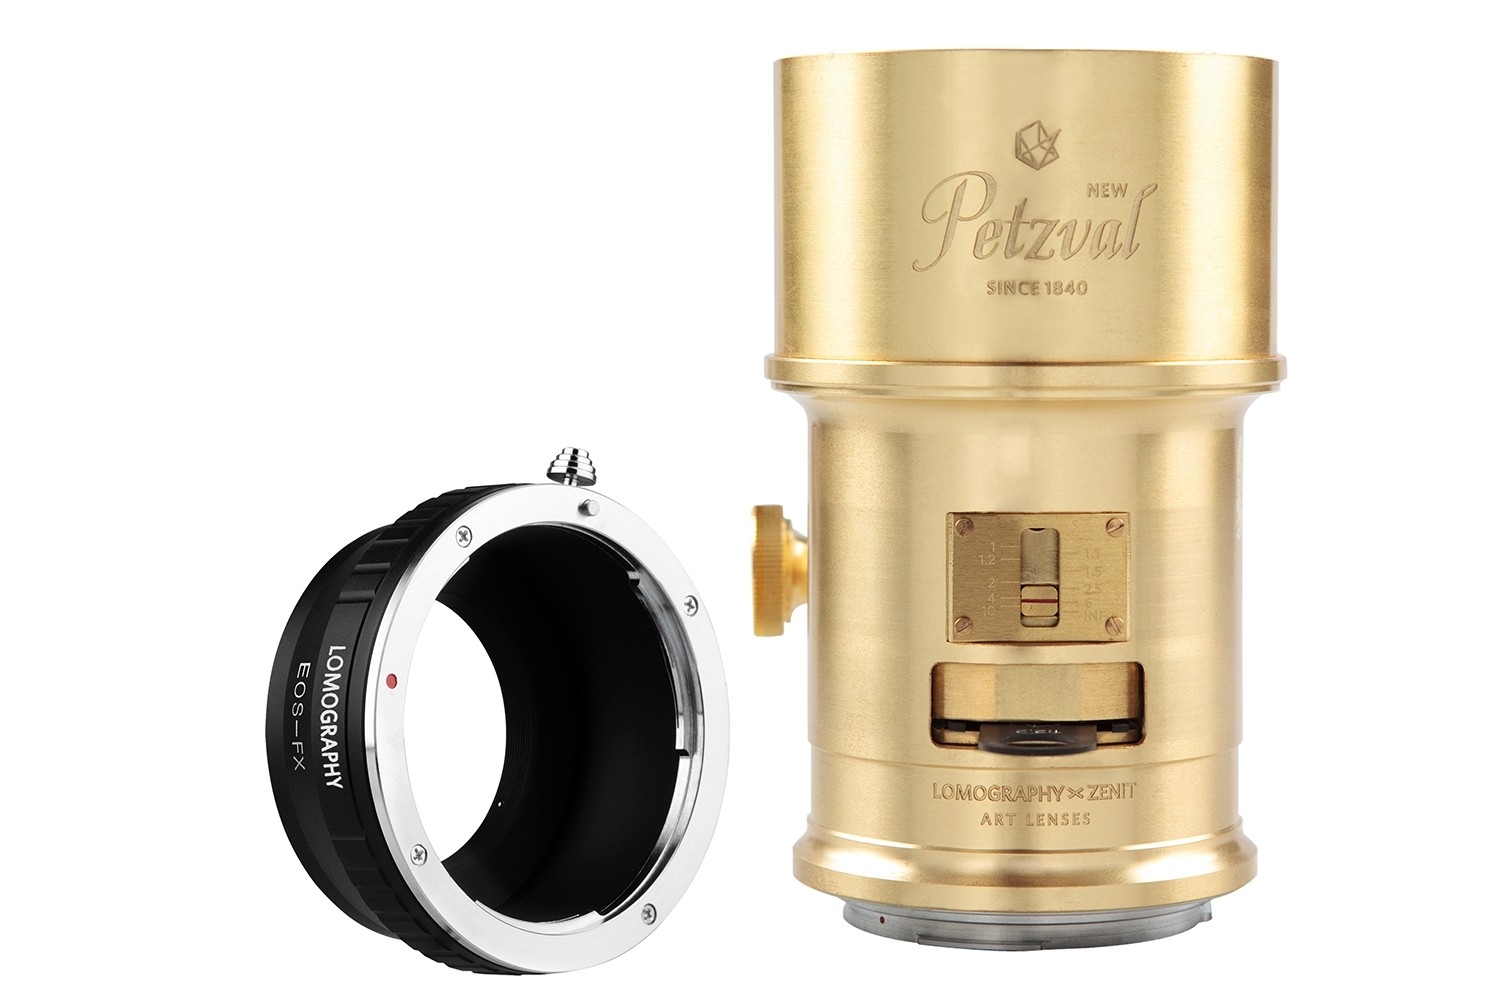 New Petzval 85 Art Lens Brass - Canon EF Mount with Fujifilm X Adapter